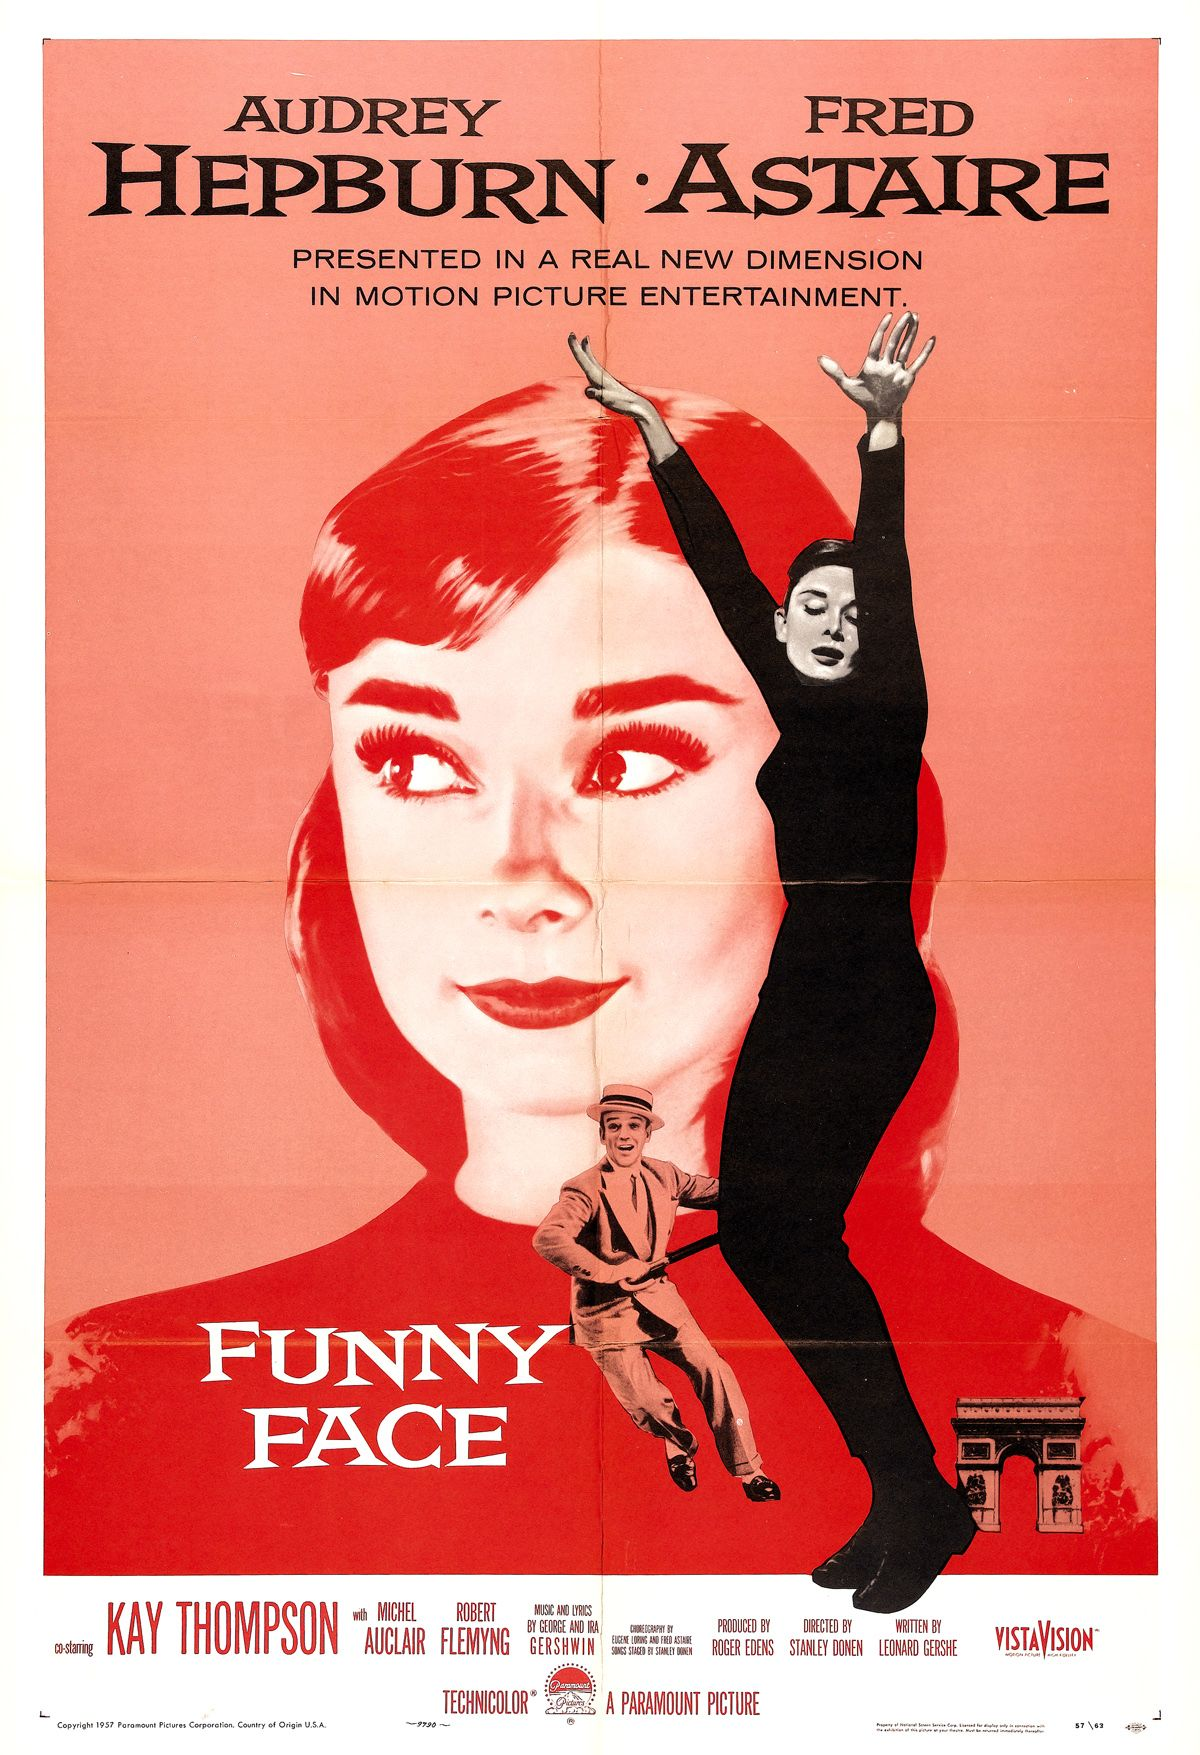 Funny Face (1-Sheet movie poster) via TCM